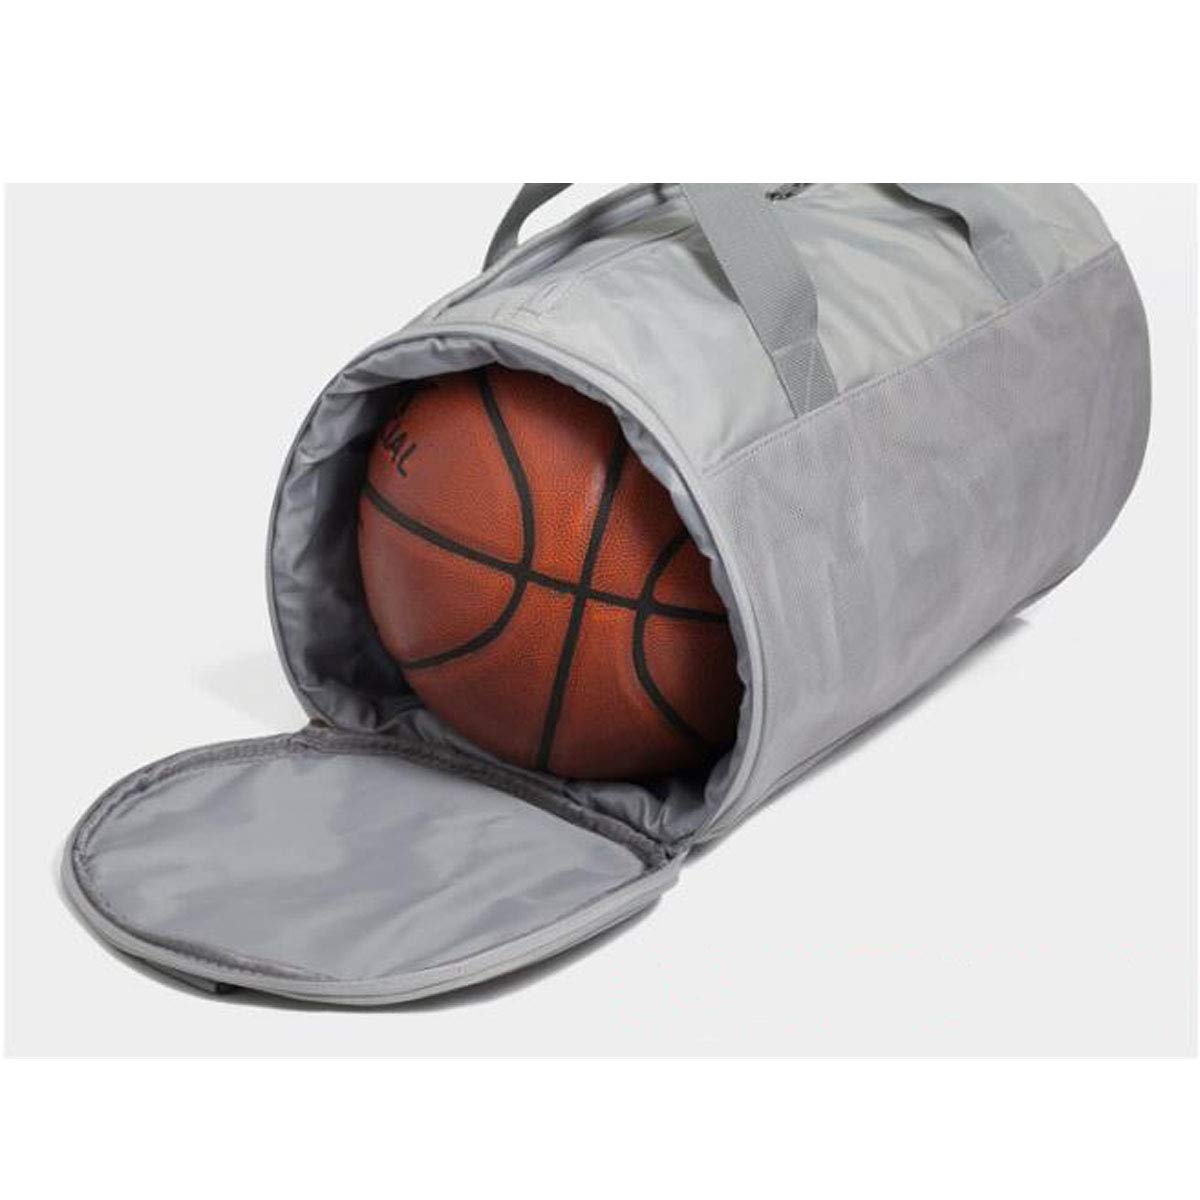 Color : Gray, Size : 2010.410.4 inch. Sports Bag Large Size: 502626cm Portable Basketball Bag Sports Training Bag for Men and Women Dry and Wet Separation Travel Bag